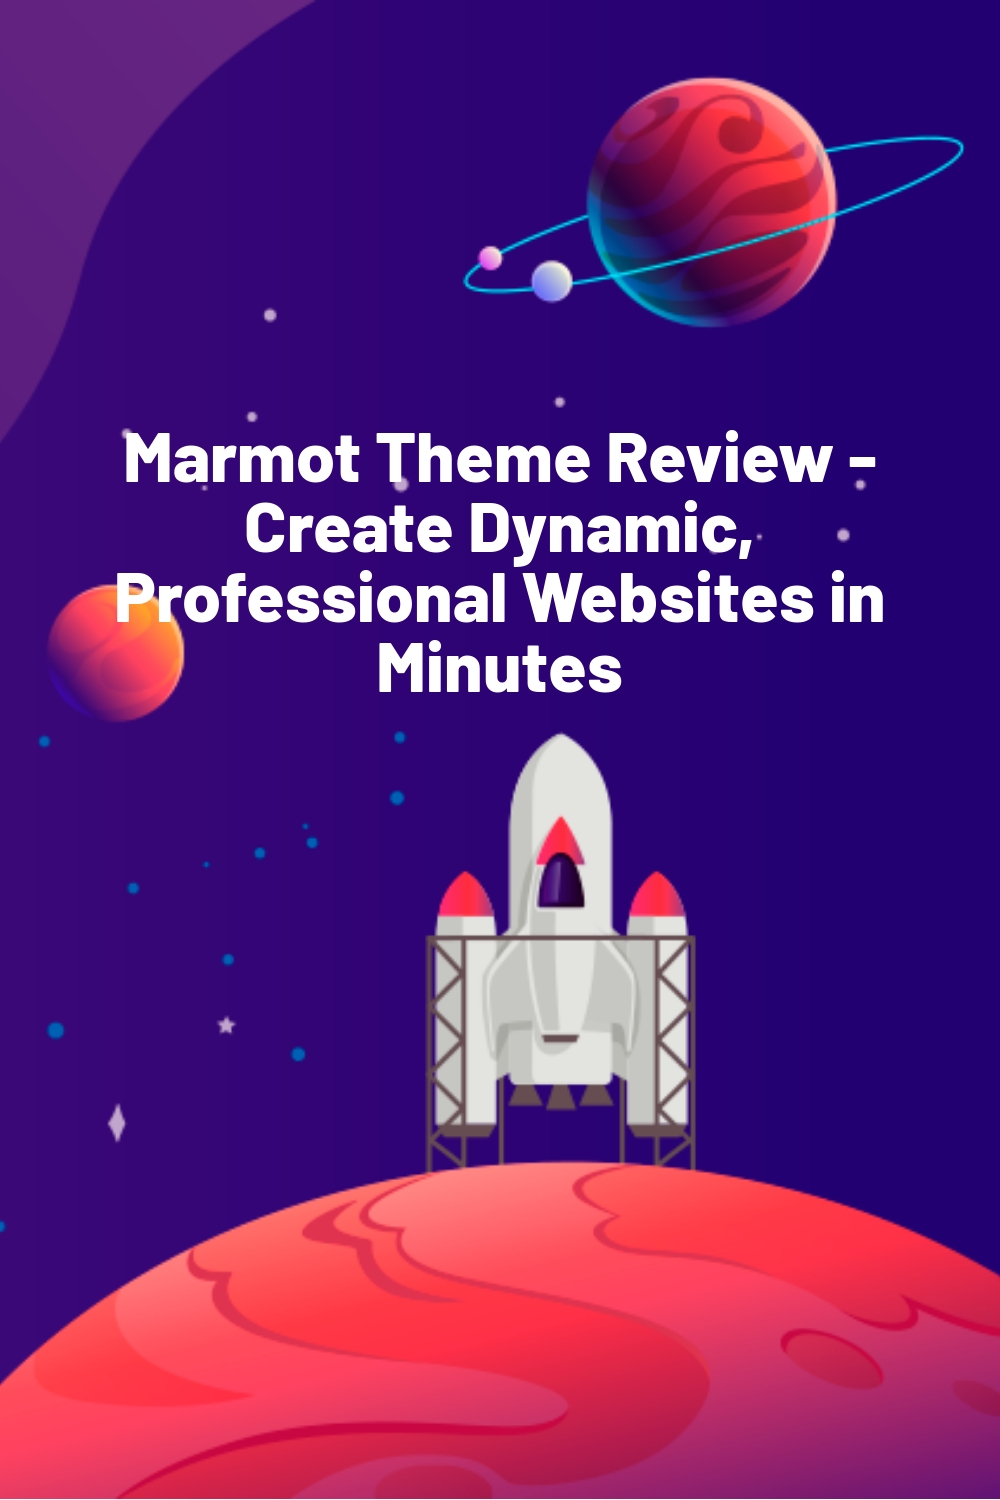 Marmot Theme Review – Create Dynamic, Professional Websites in Minutes